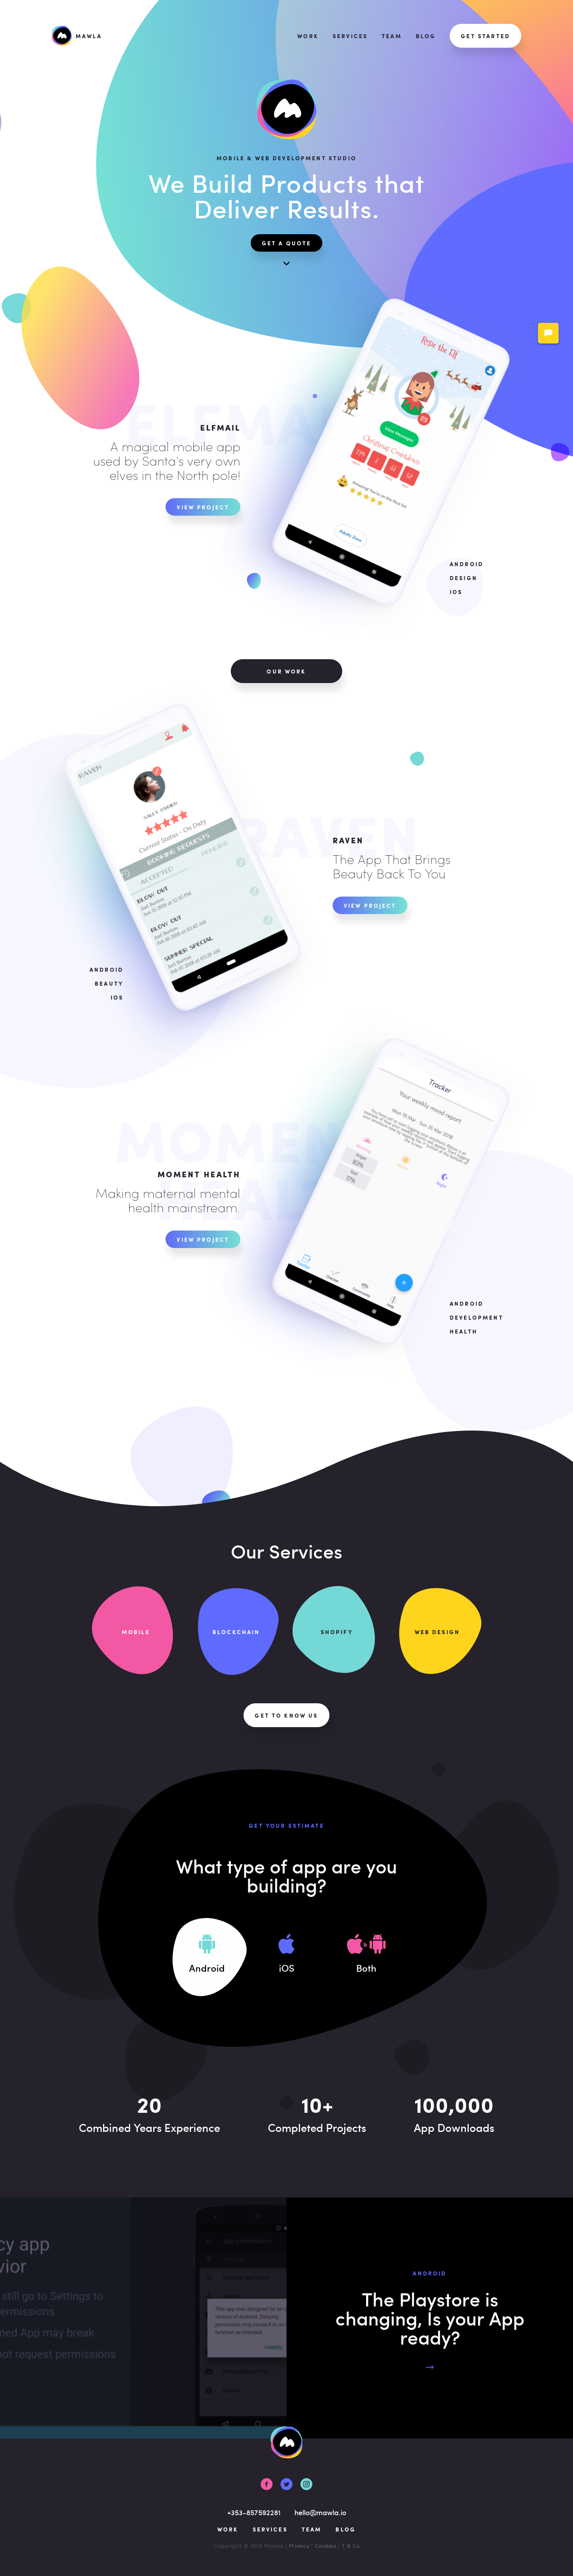 Example of Design for Internet & Telecom, Mobile & Wireless, Mobile Apps & Add-Ons, Mobile Landing Page by mawla.io | Mobile Landing Page Design